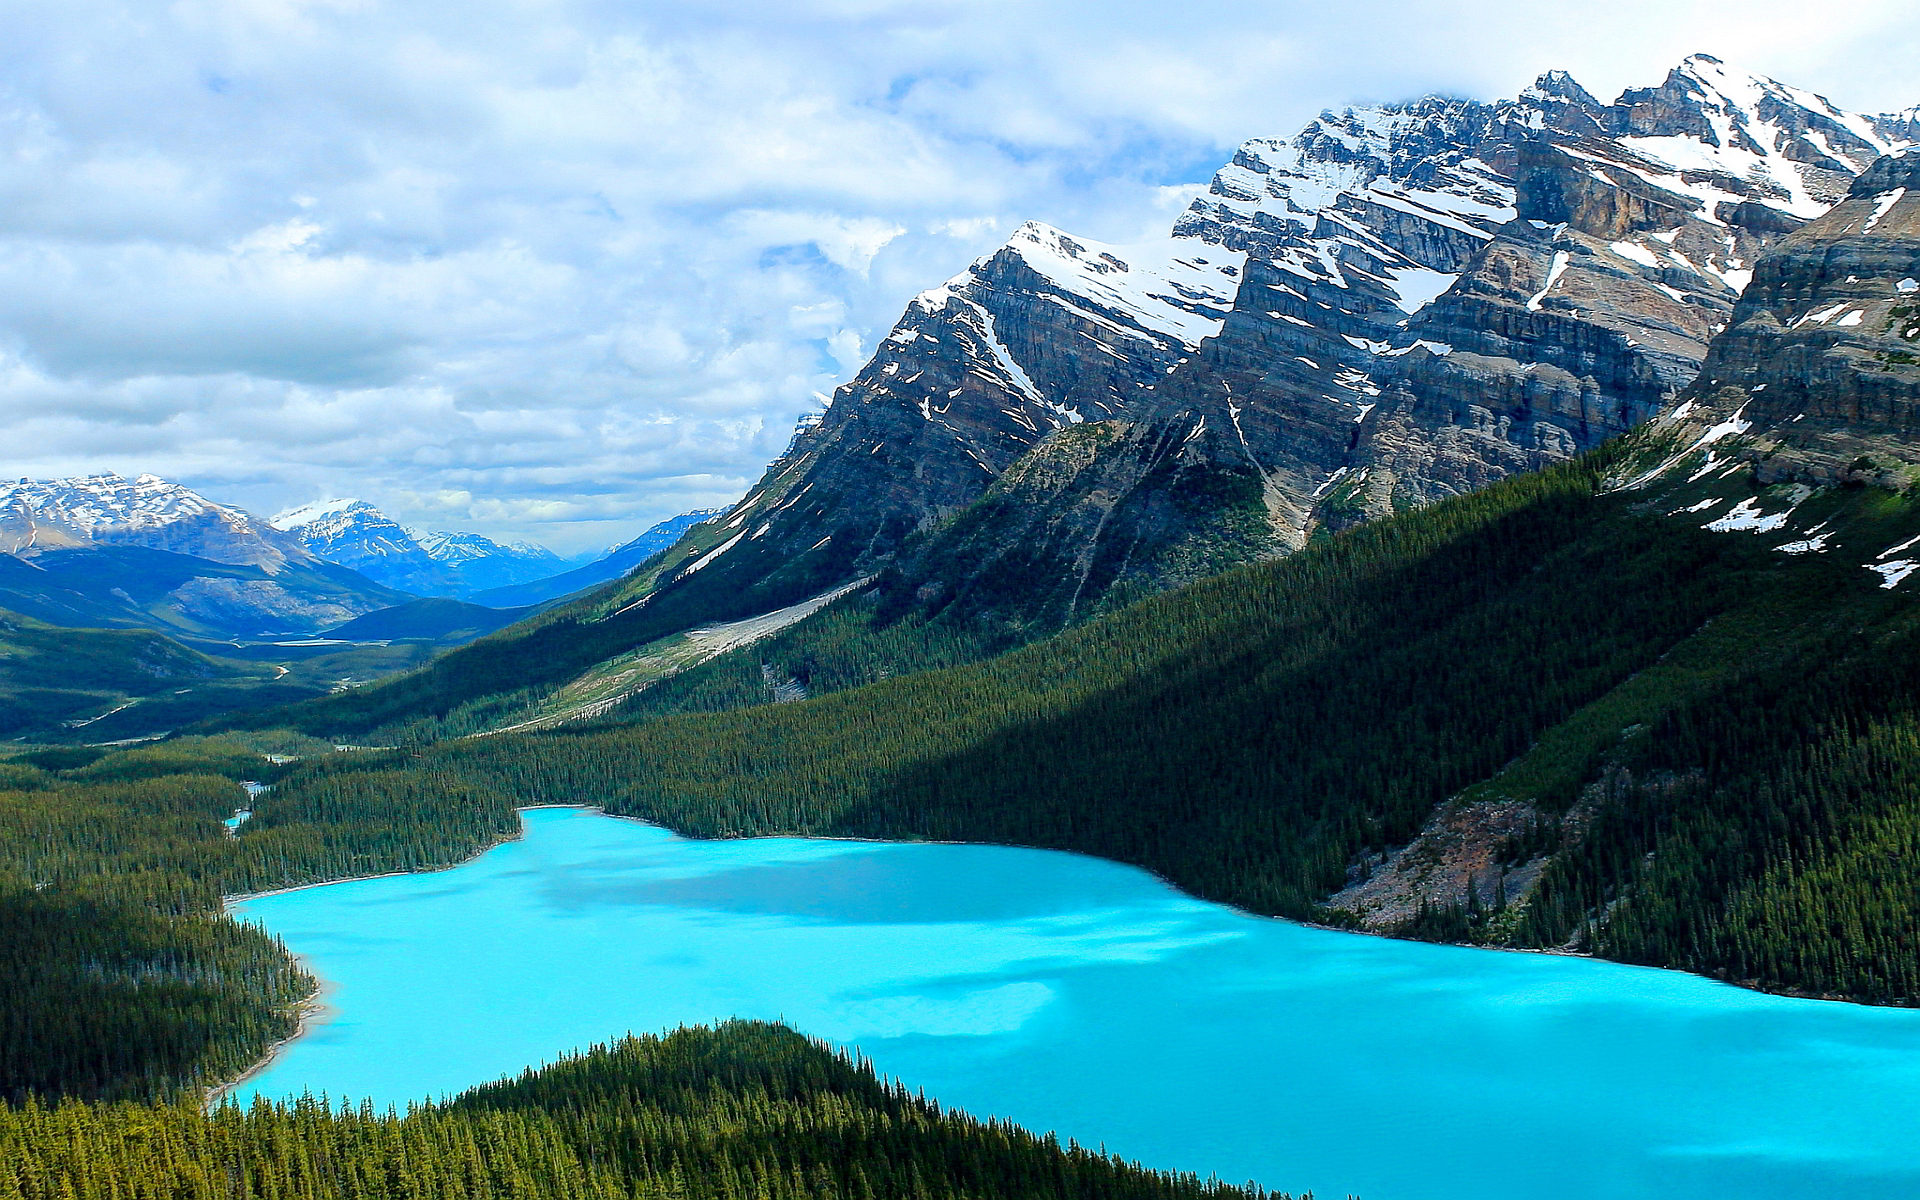 Lake wallpaper peyto canada hd desktop wallpapers 4k hd for Wallpaper canada